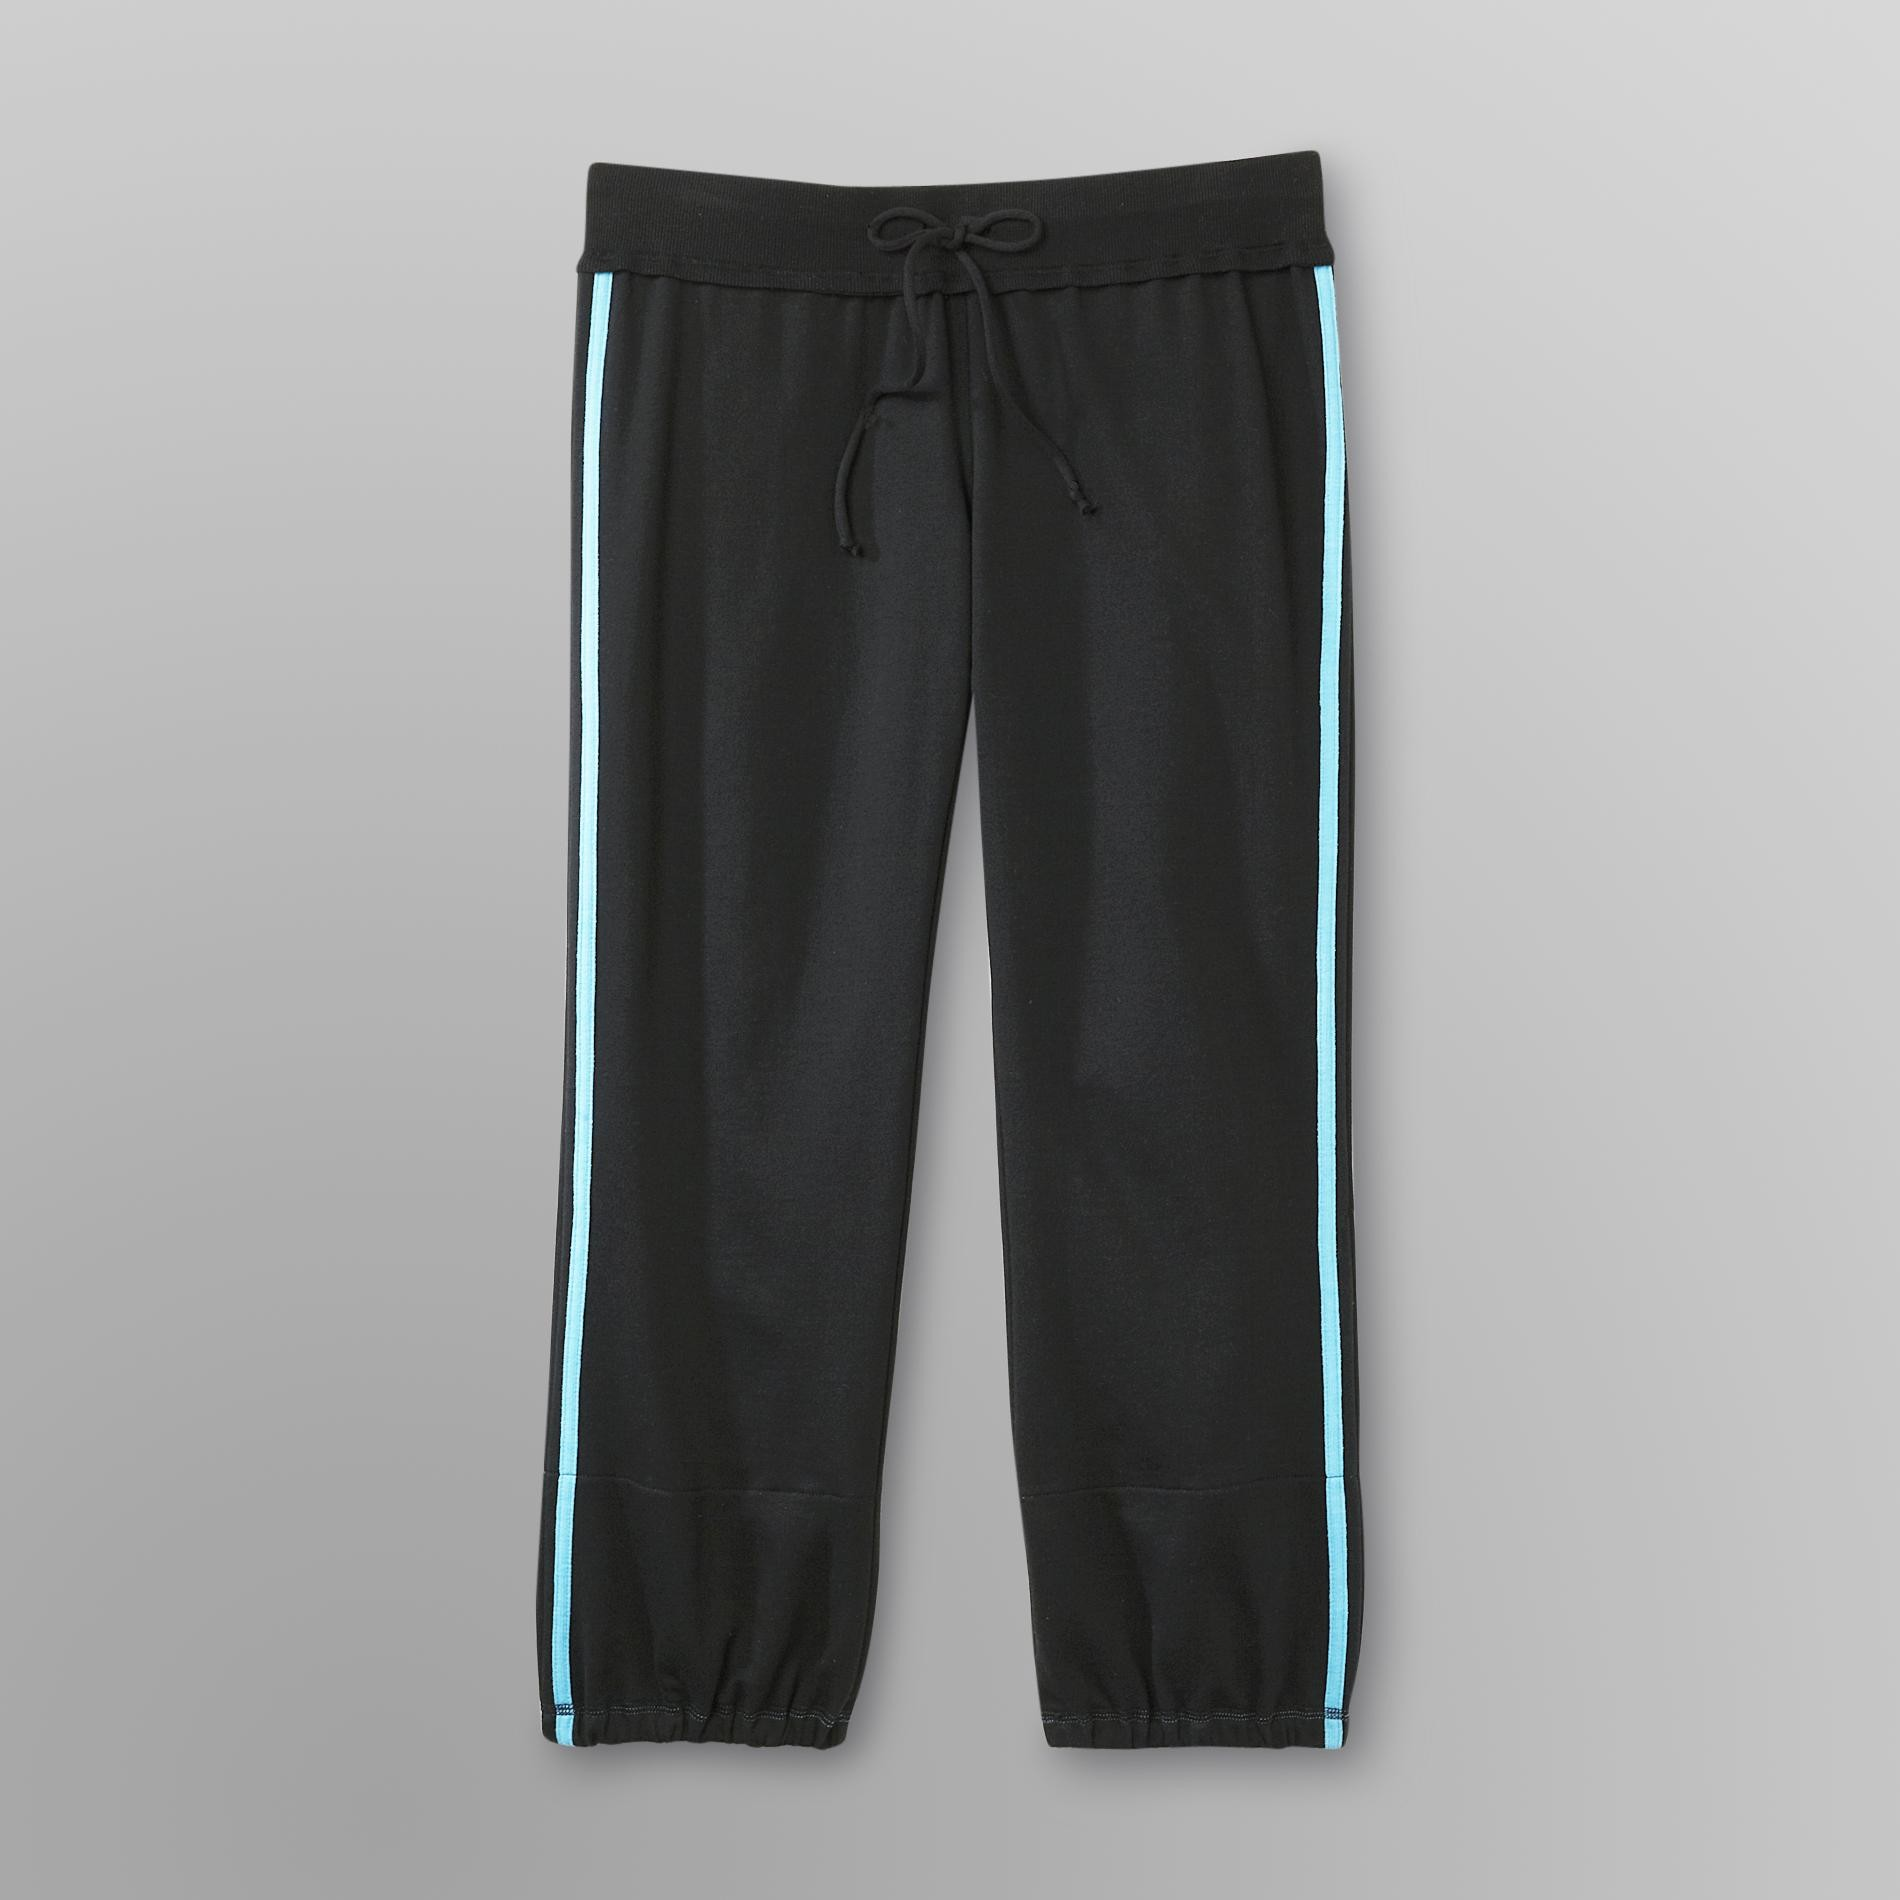 Joe by Joe Boxer Women's Capri Sweatpants at Sears.com